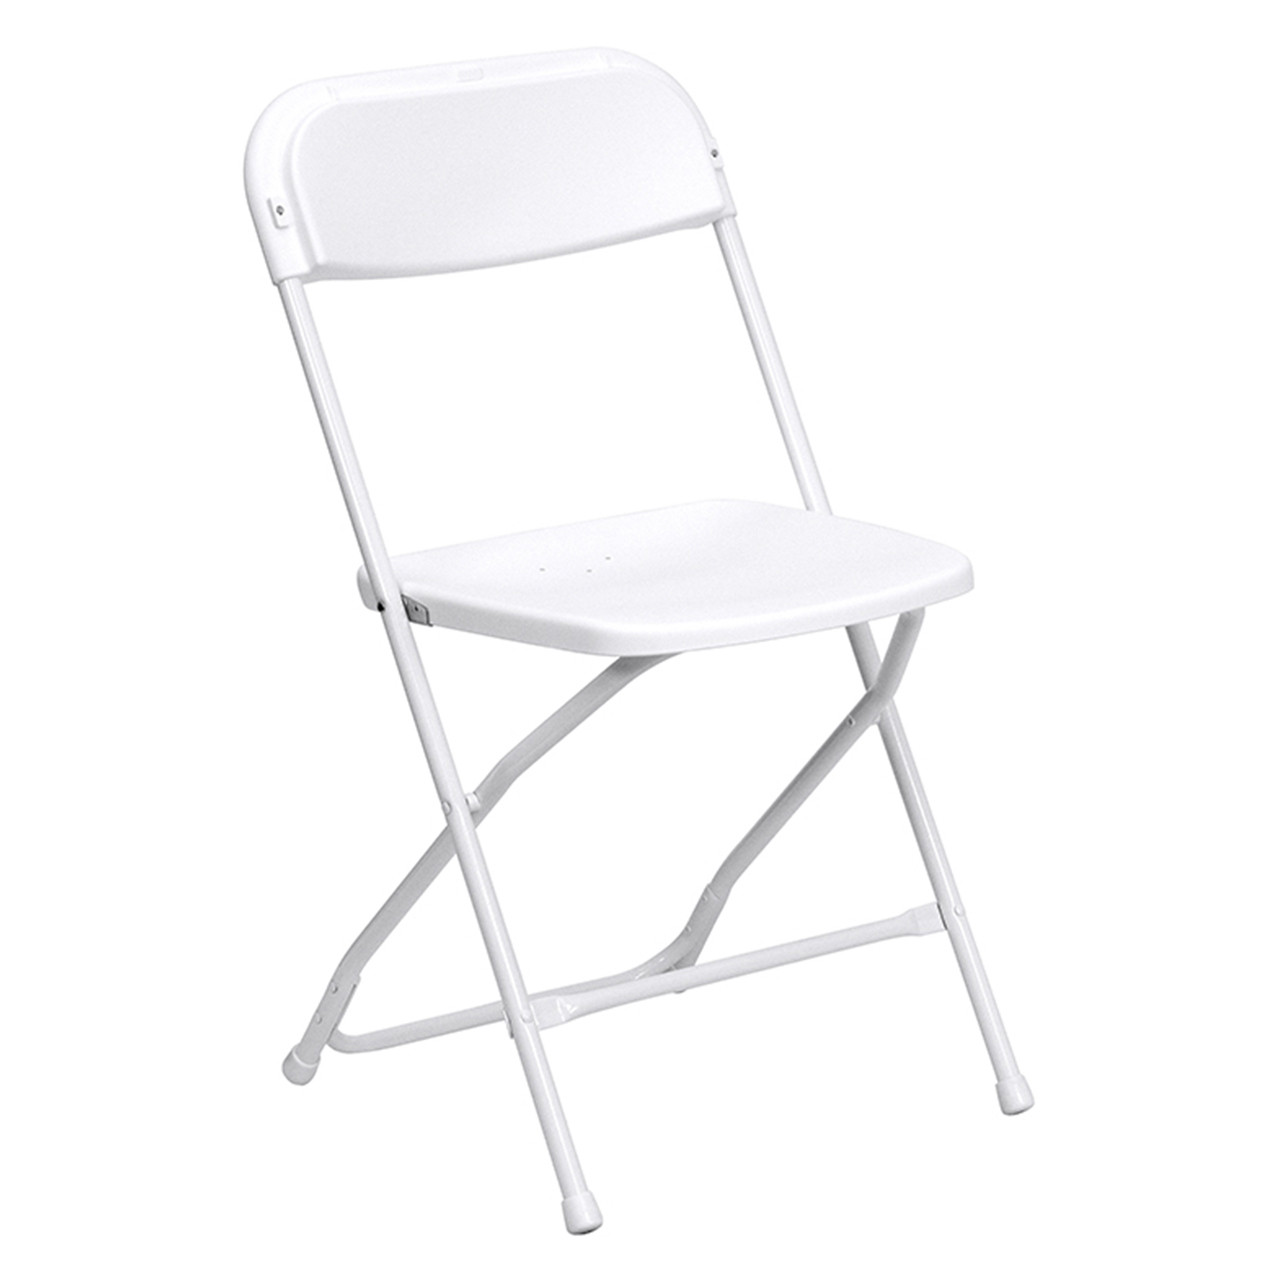 Pleasing Advantage White Poly Folding Chair Dining Height Ppfc White Uwap Interior Chair Design Uwaporg